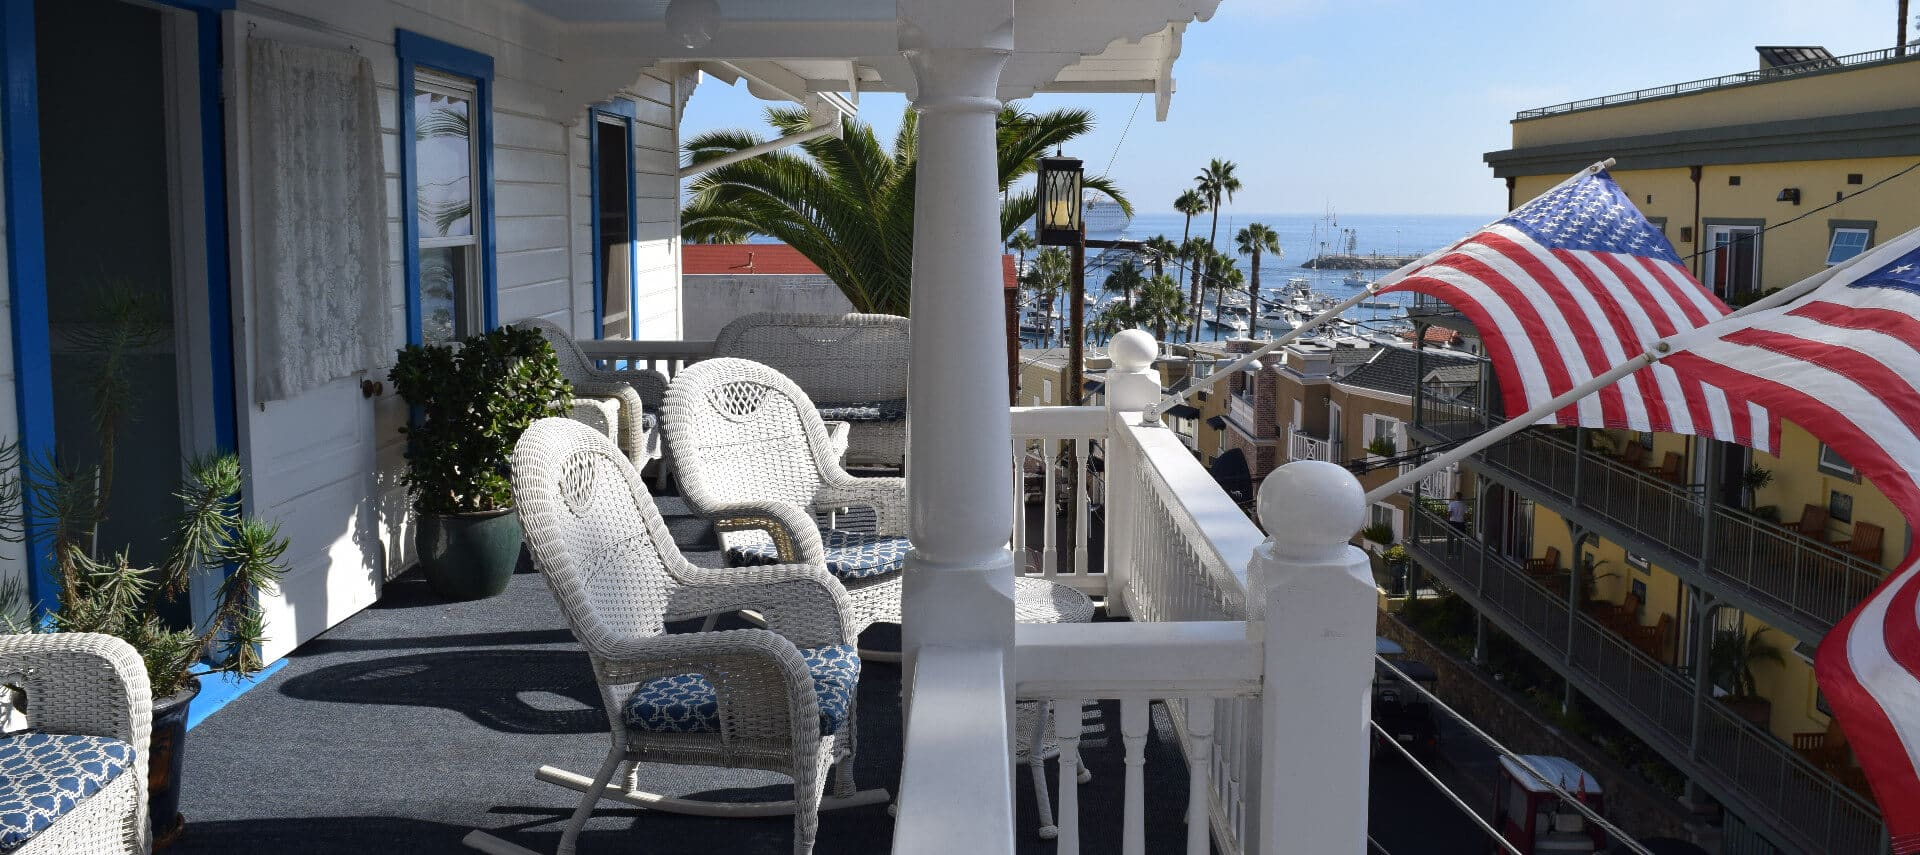 Second floor balcony with wicker rocking chairs an American flags overlooking ocean view.